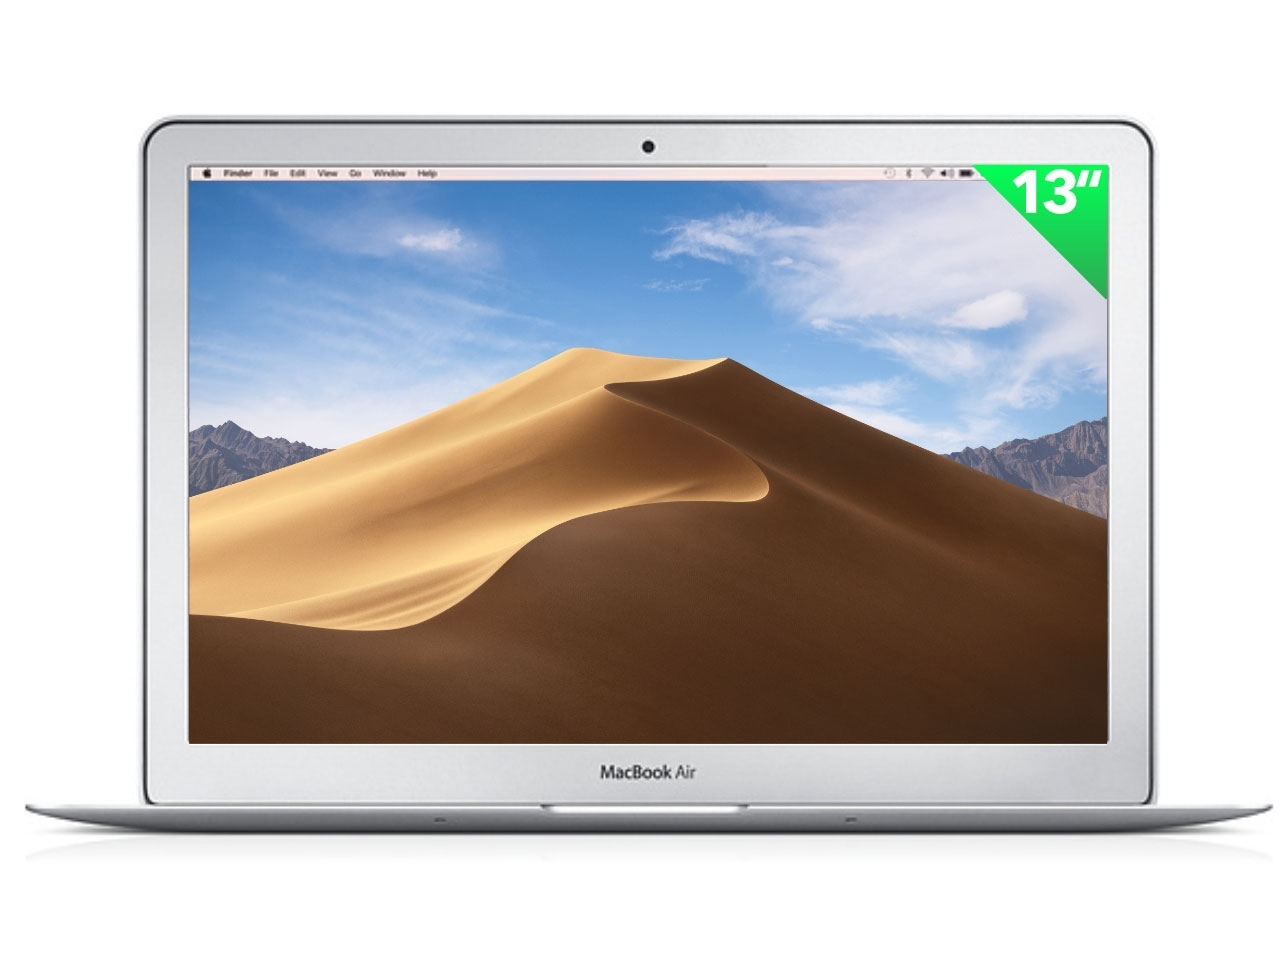 13 Apple MacBook Air BroadWell 2017 ID: 2084438